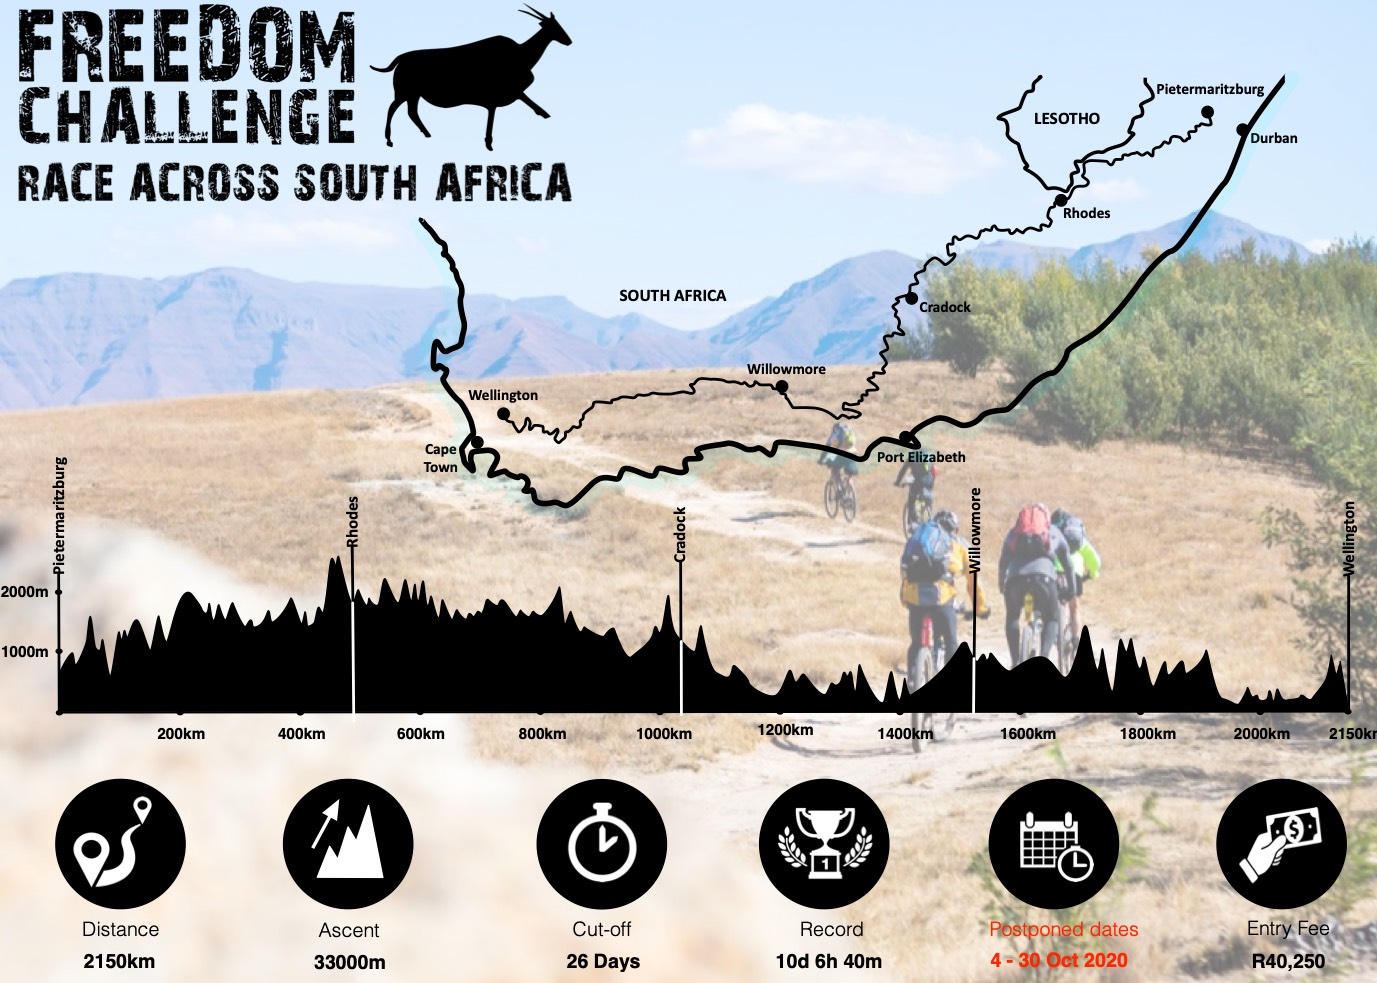 freedom challenge: race across south africa